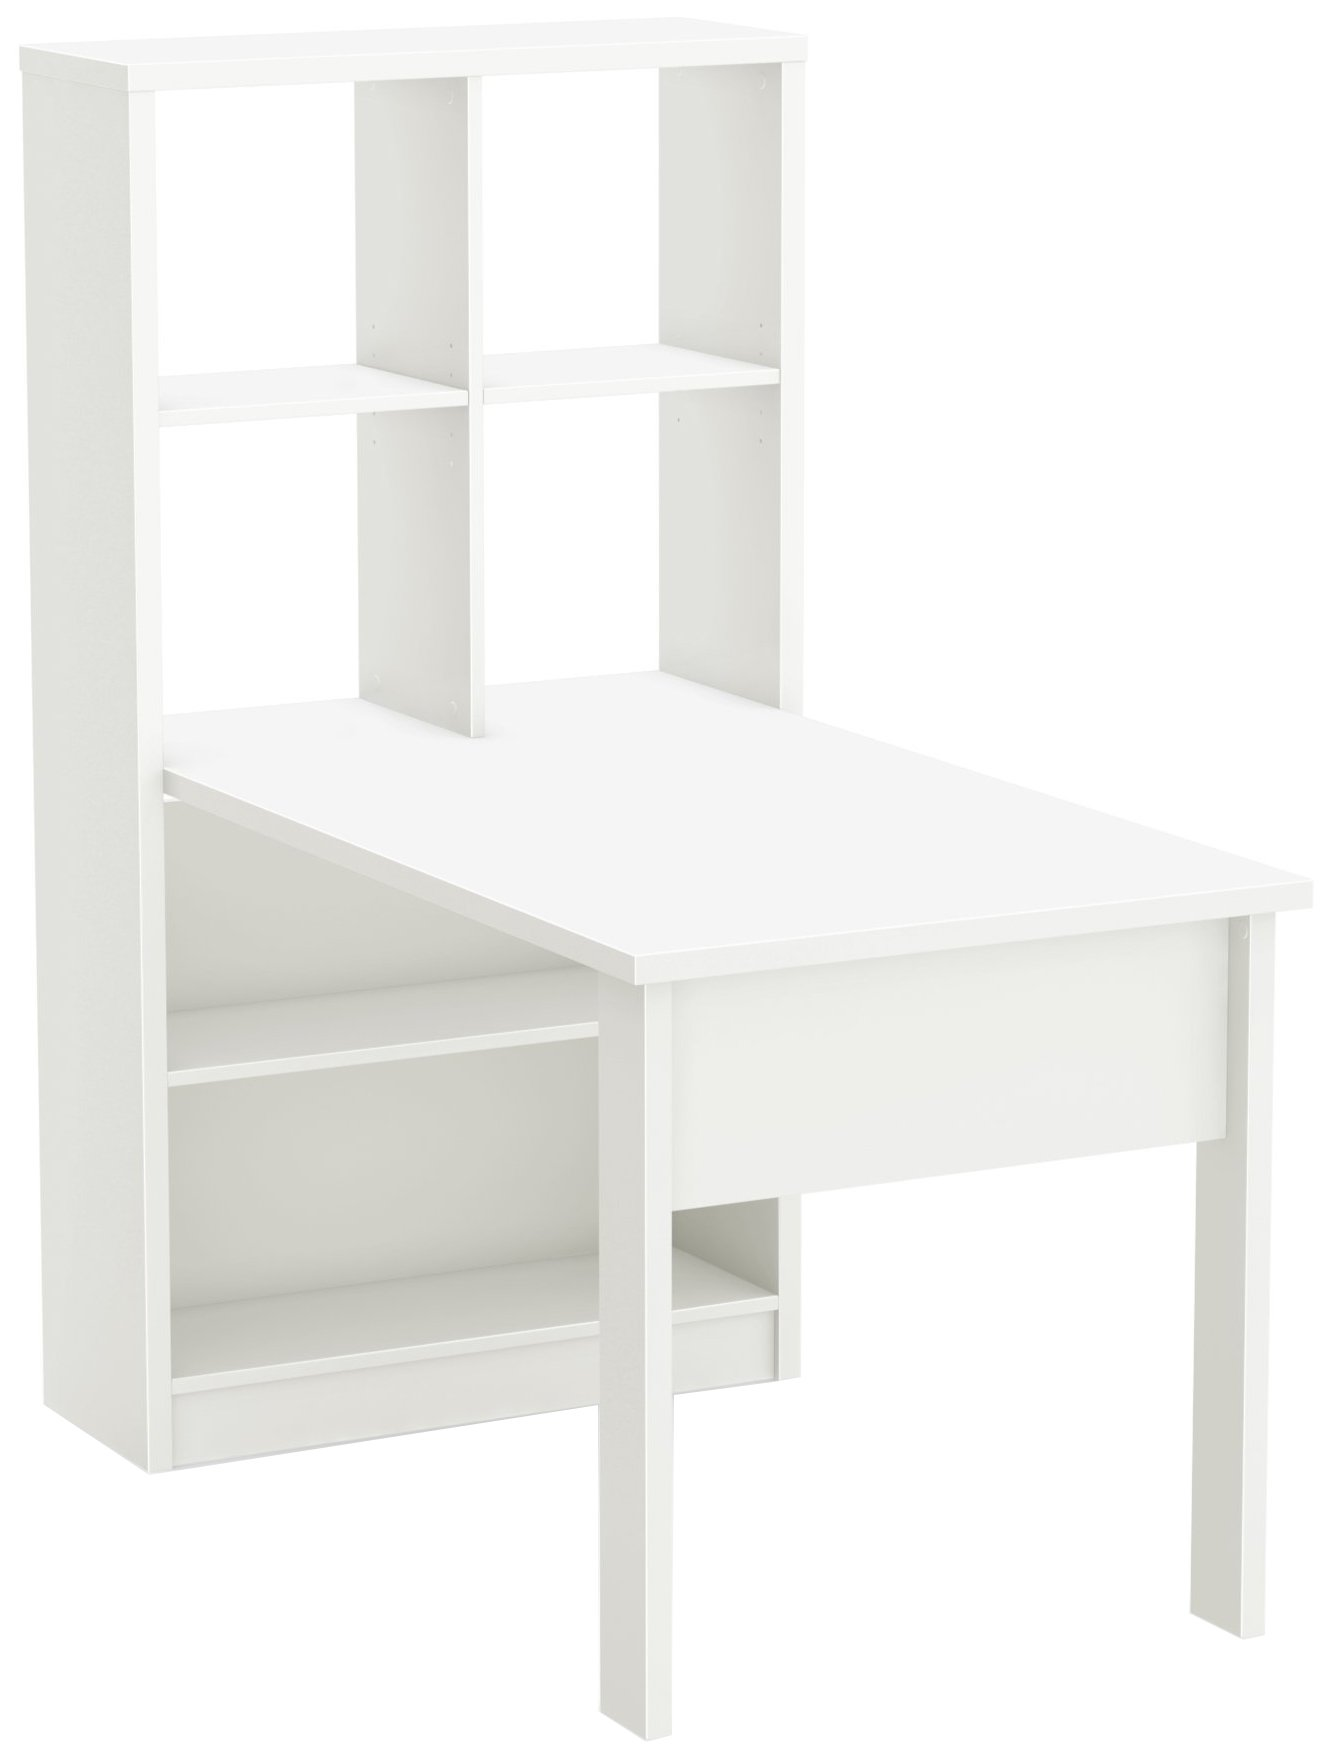 South Shore Annexe Craft Table and Storage Unit Combo, Pure White by South Shore